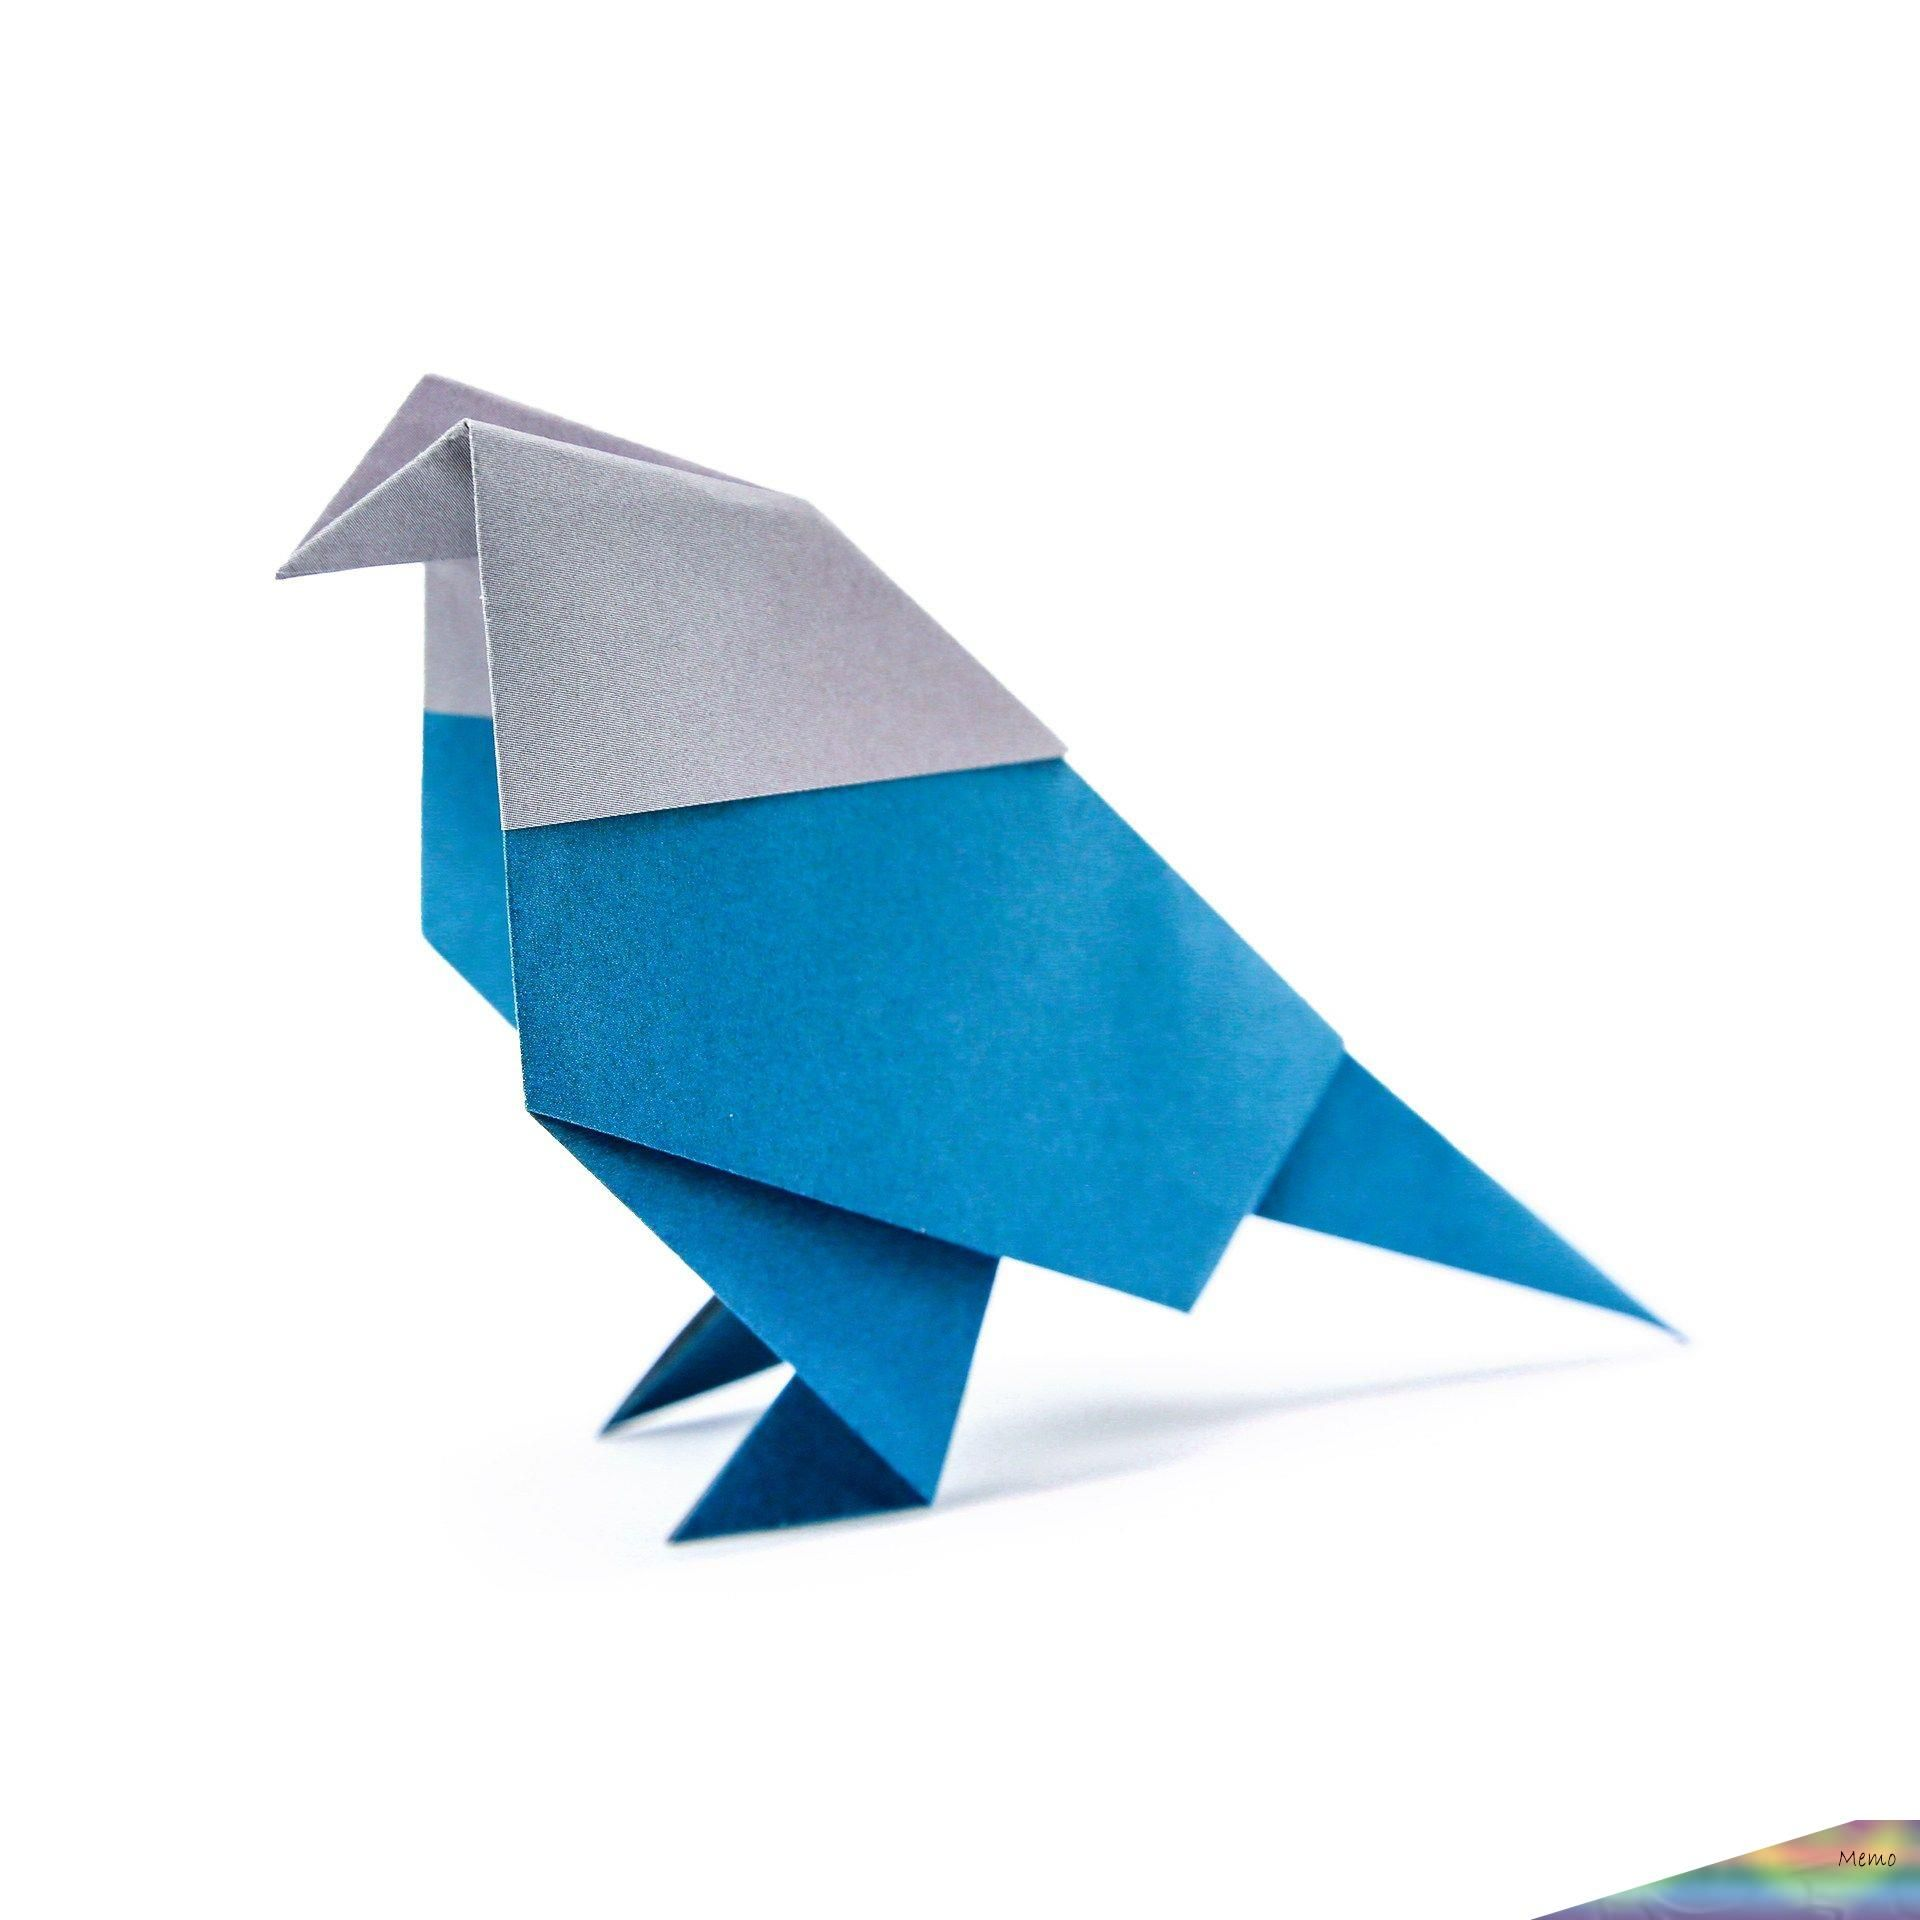 Learn How To Fold An Origami Bird Using This Step By Step